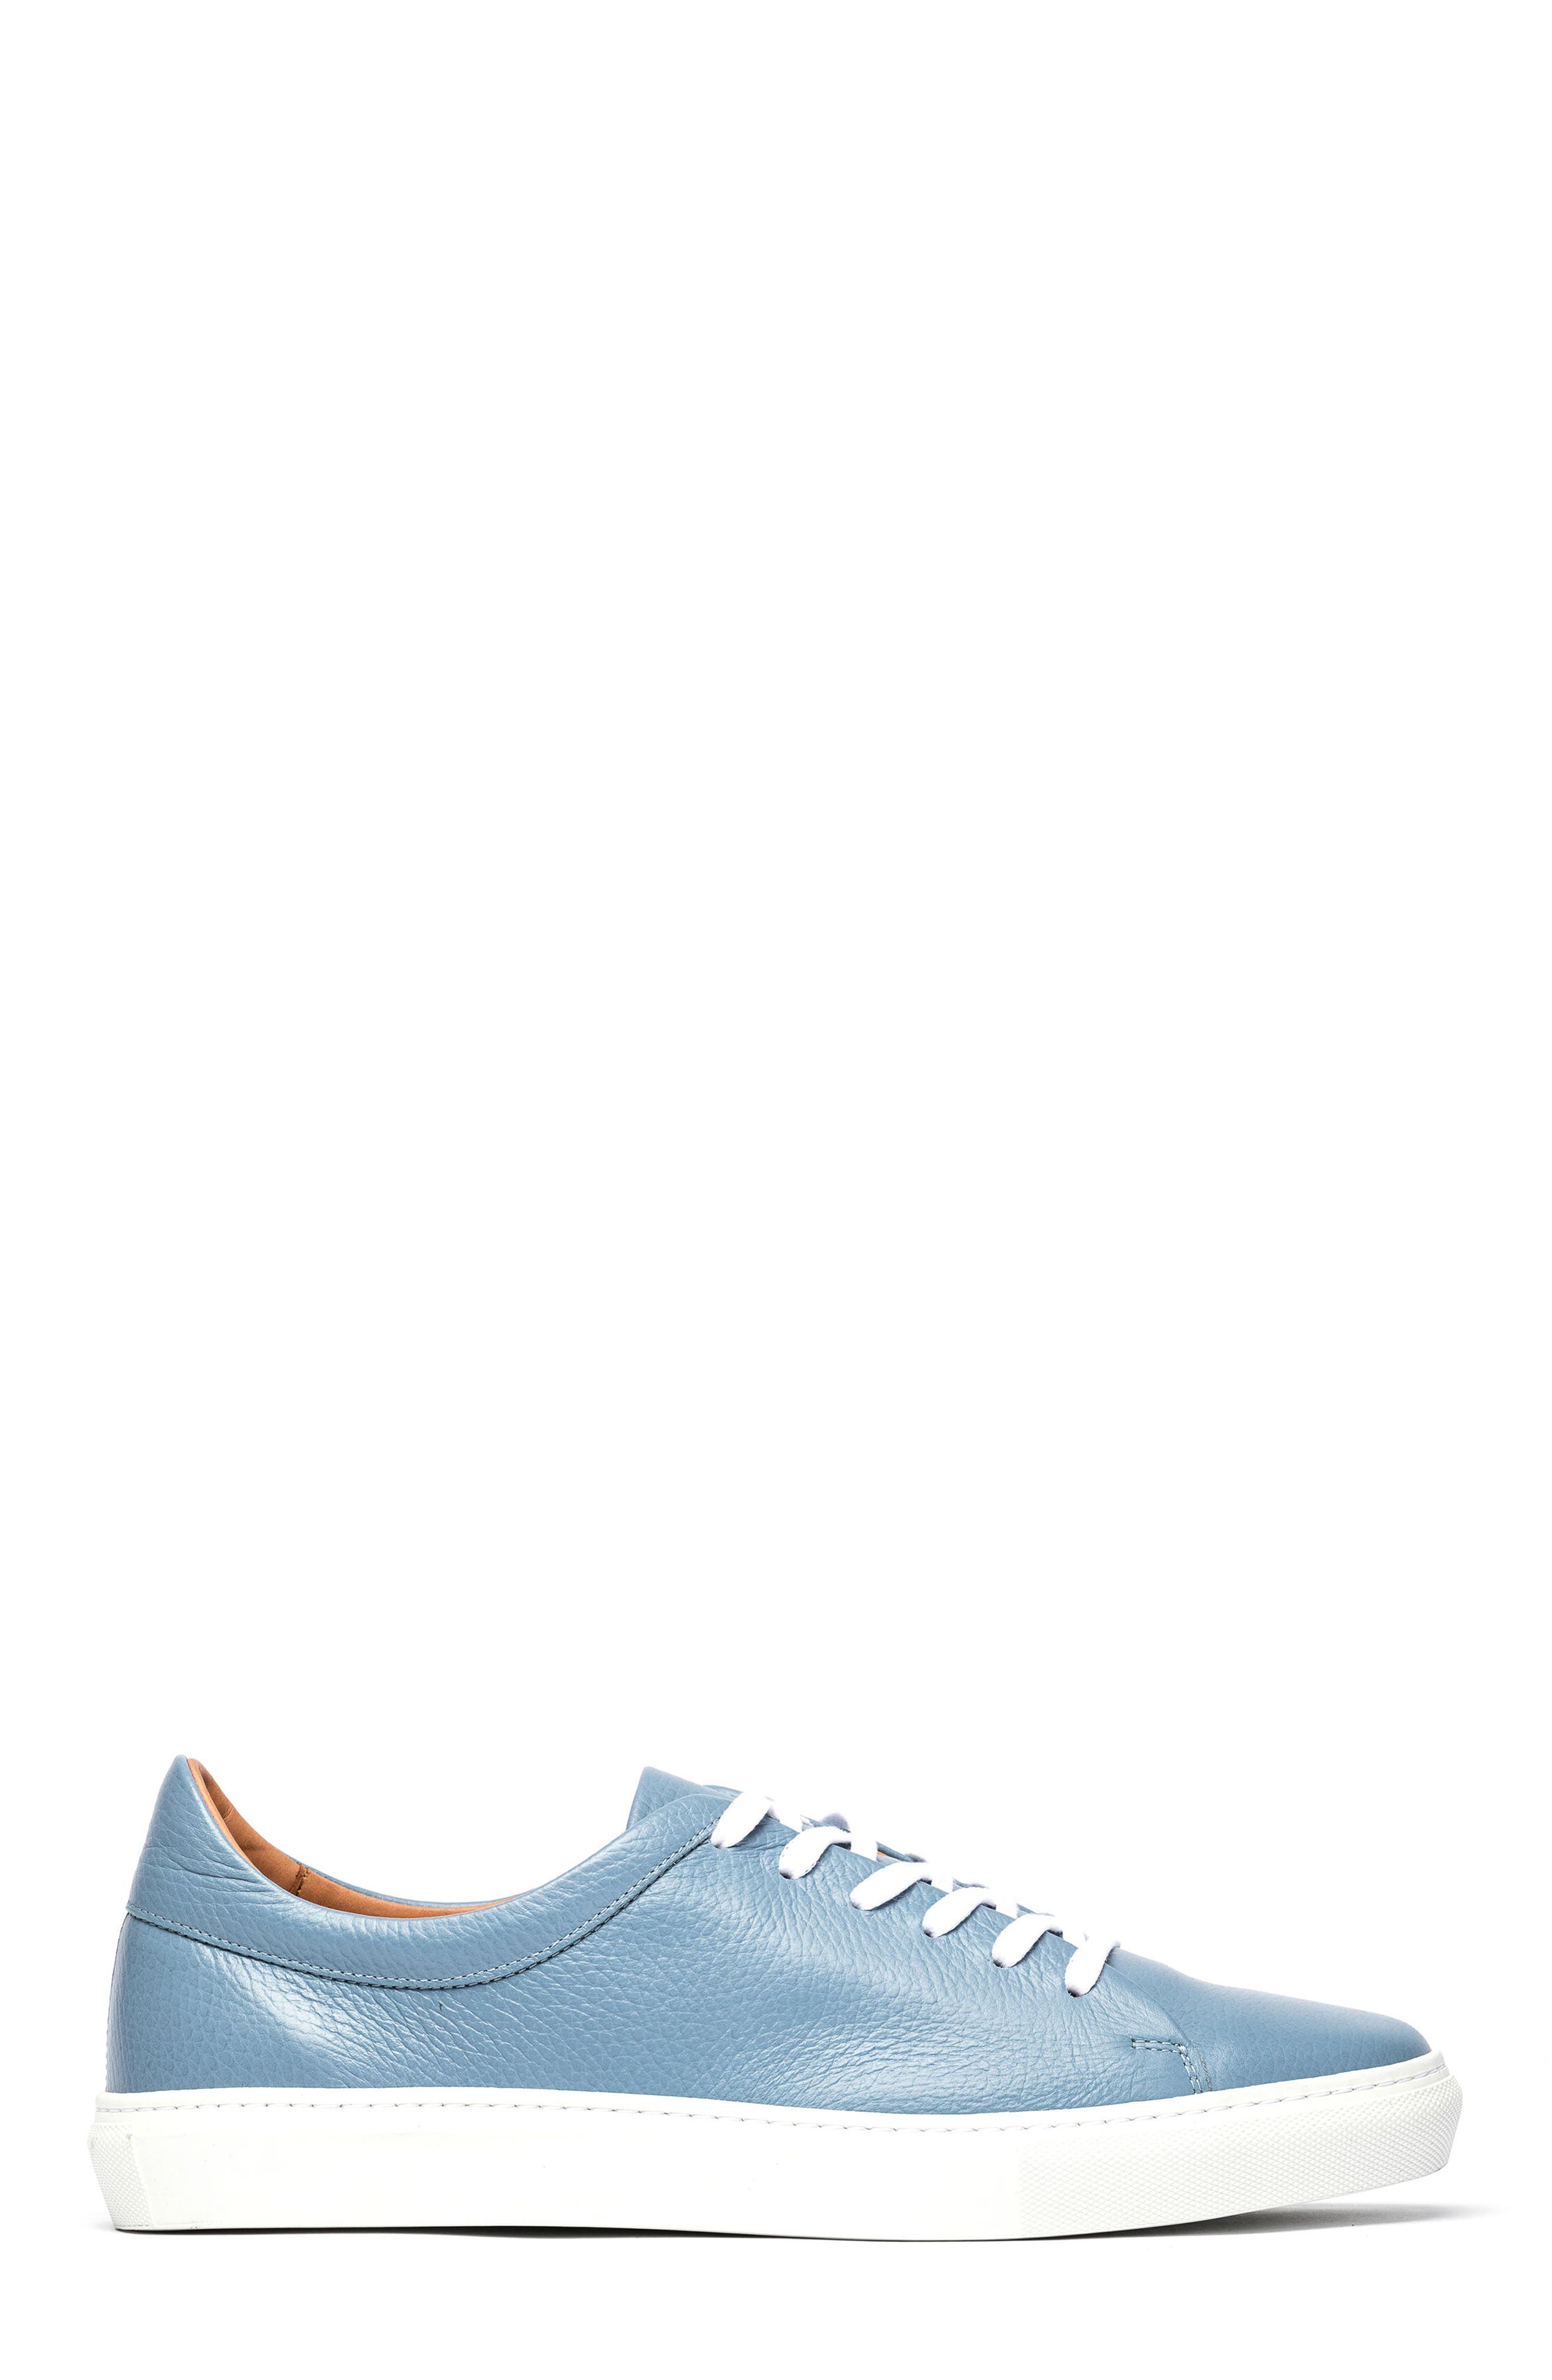 Windemere Sneaker,                             Alternate thumbnail 3, color,                             Sky Blue Leather